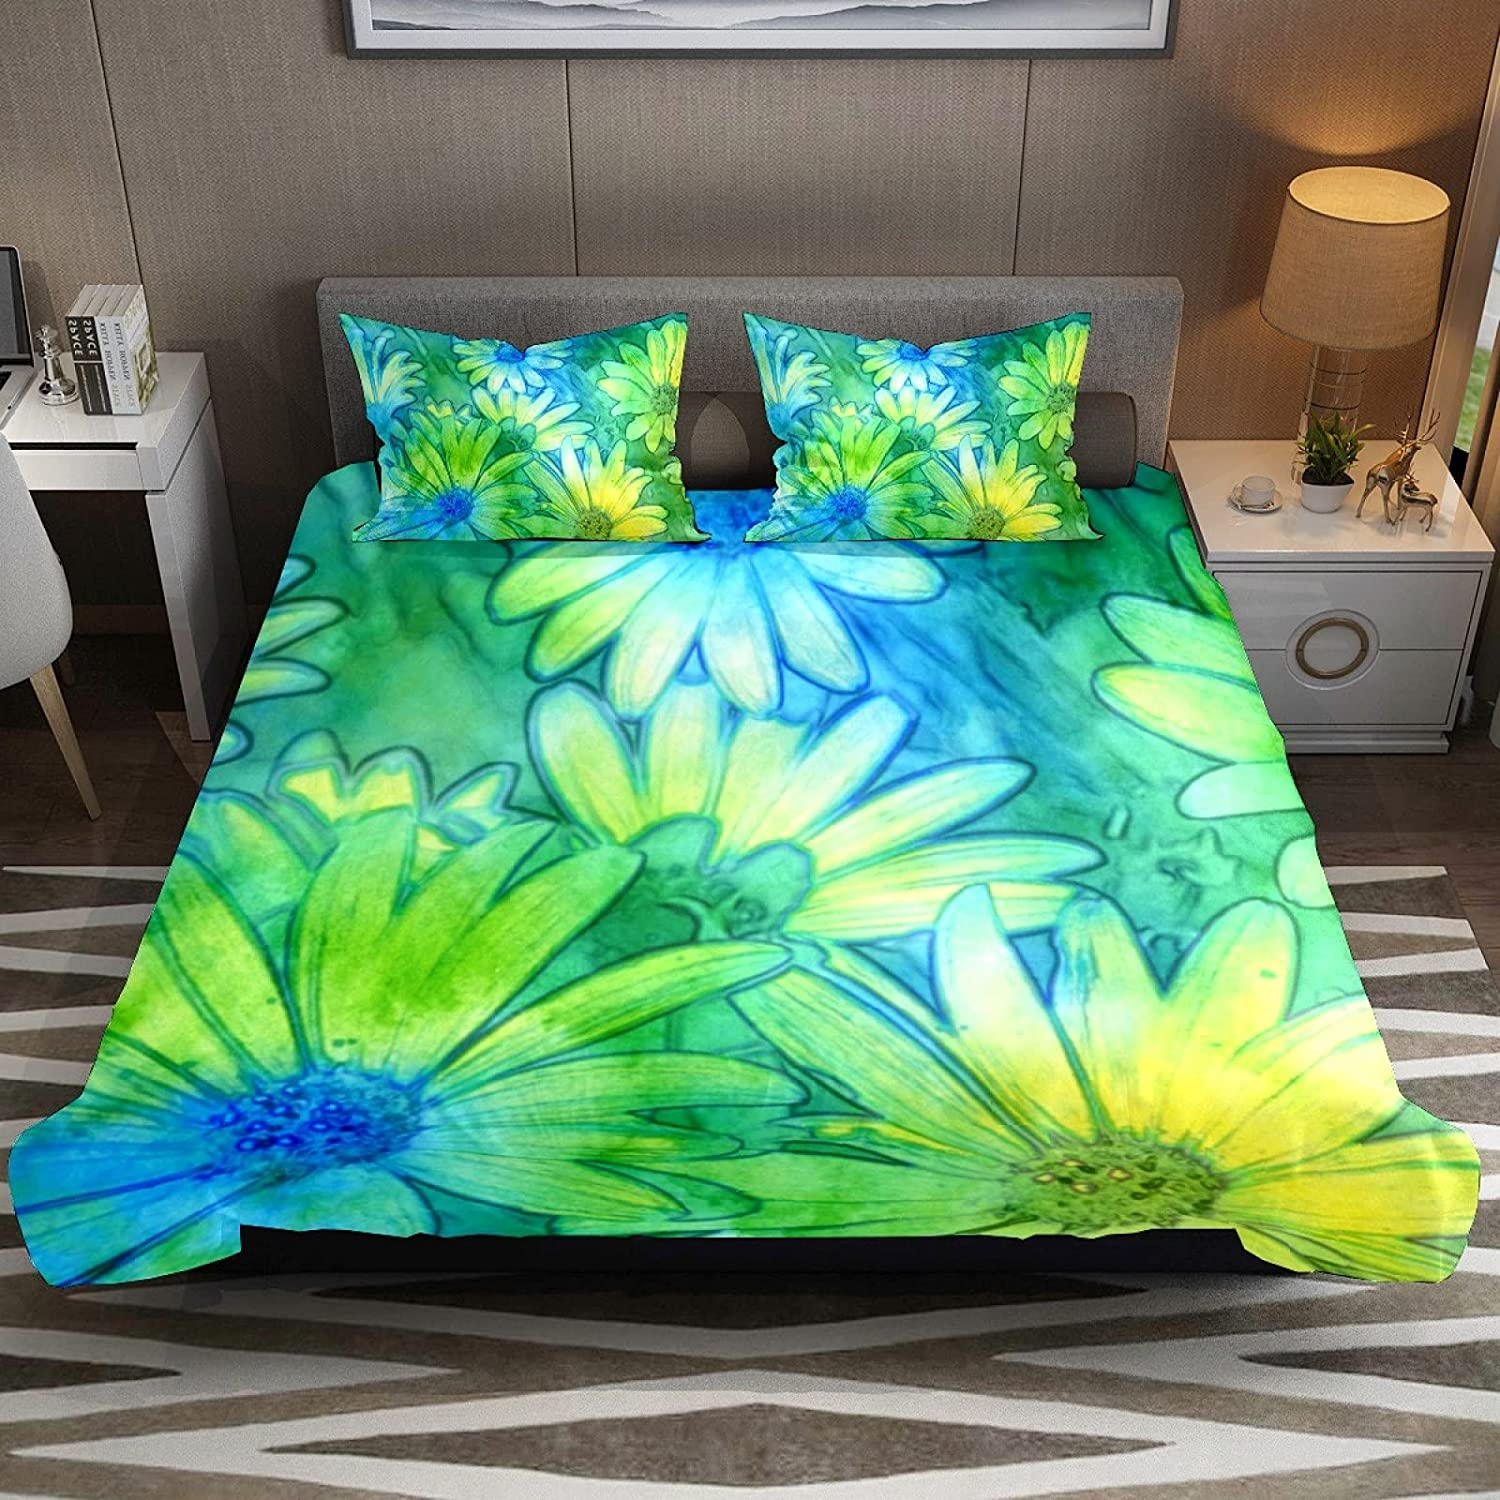 N\O Popular brand in the world 3 Piece Bedding Sets Yellow Daisies Green Blue Abstract High order Duve